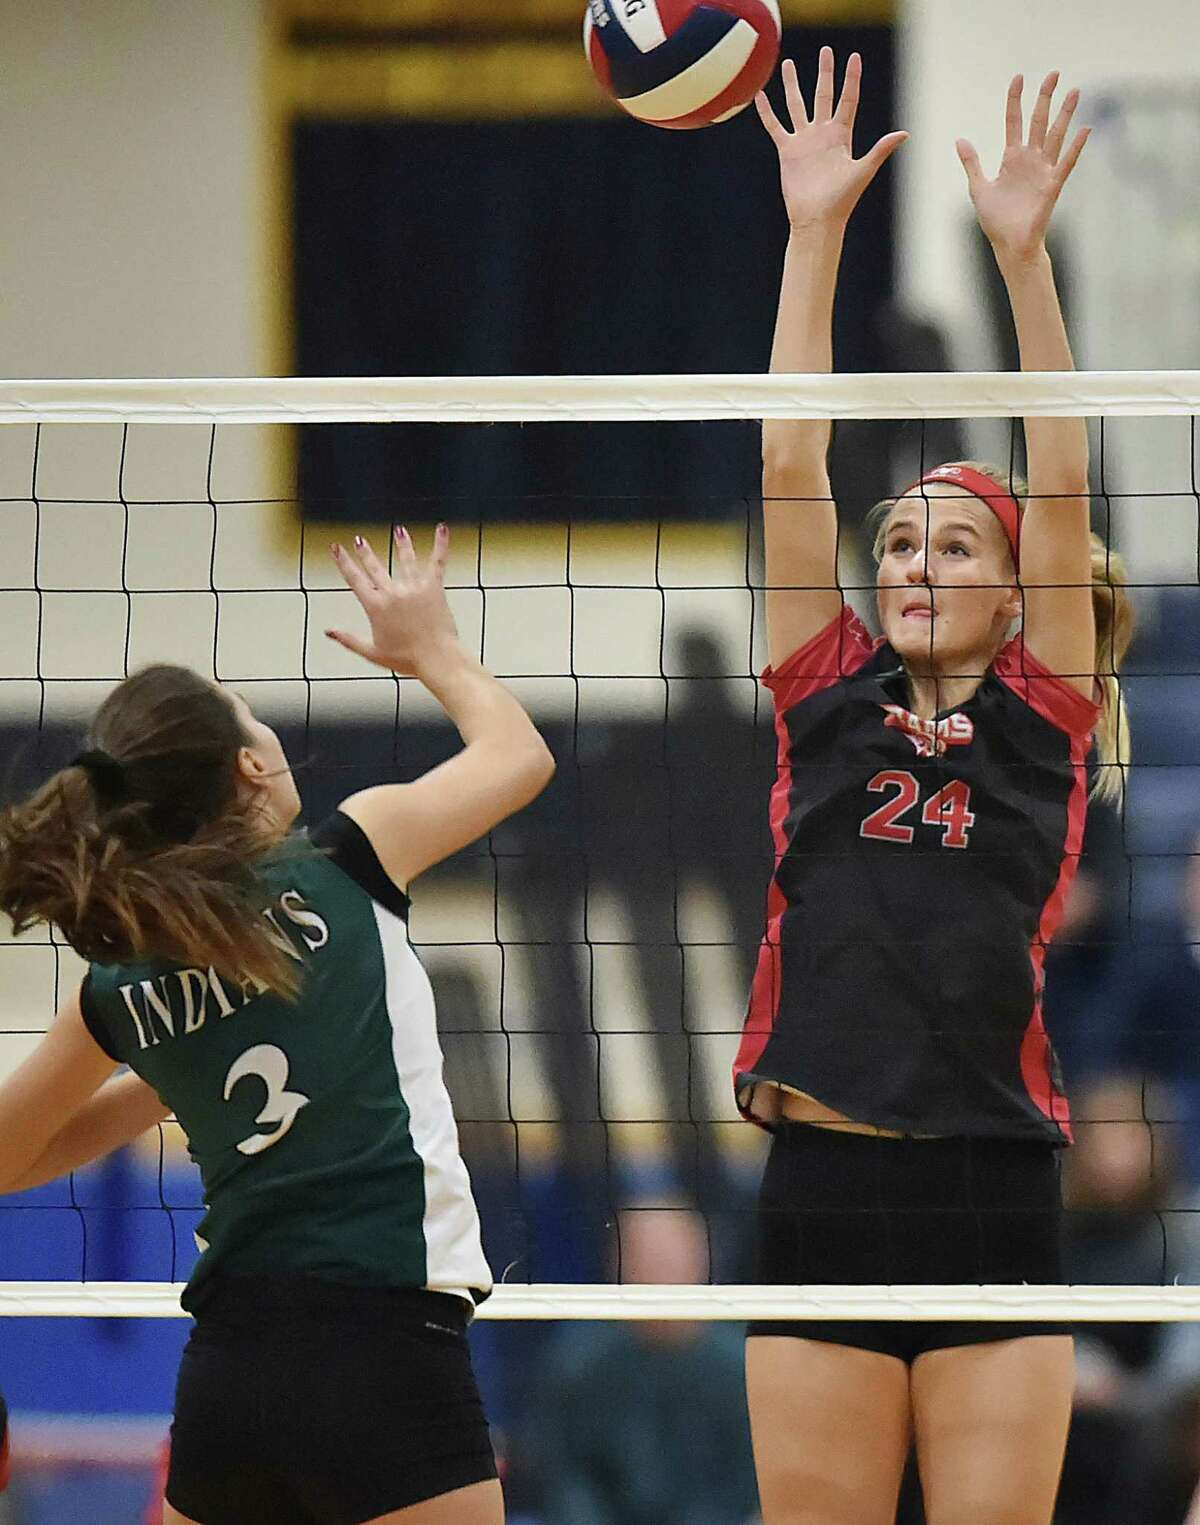 Cheshire's Brady McQuade, right, blocks a shot by Guilford's Jessica Decensi during Saturday's SCC championship game at East Haven High School.